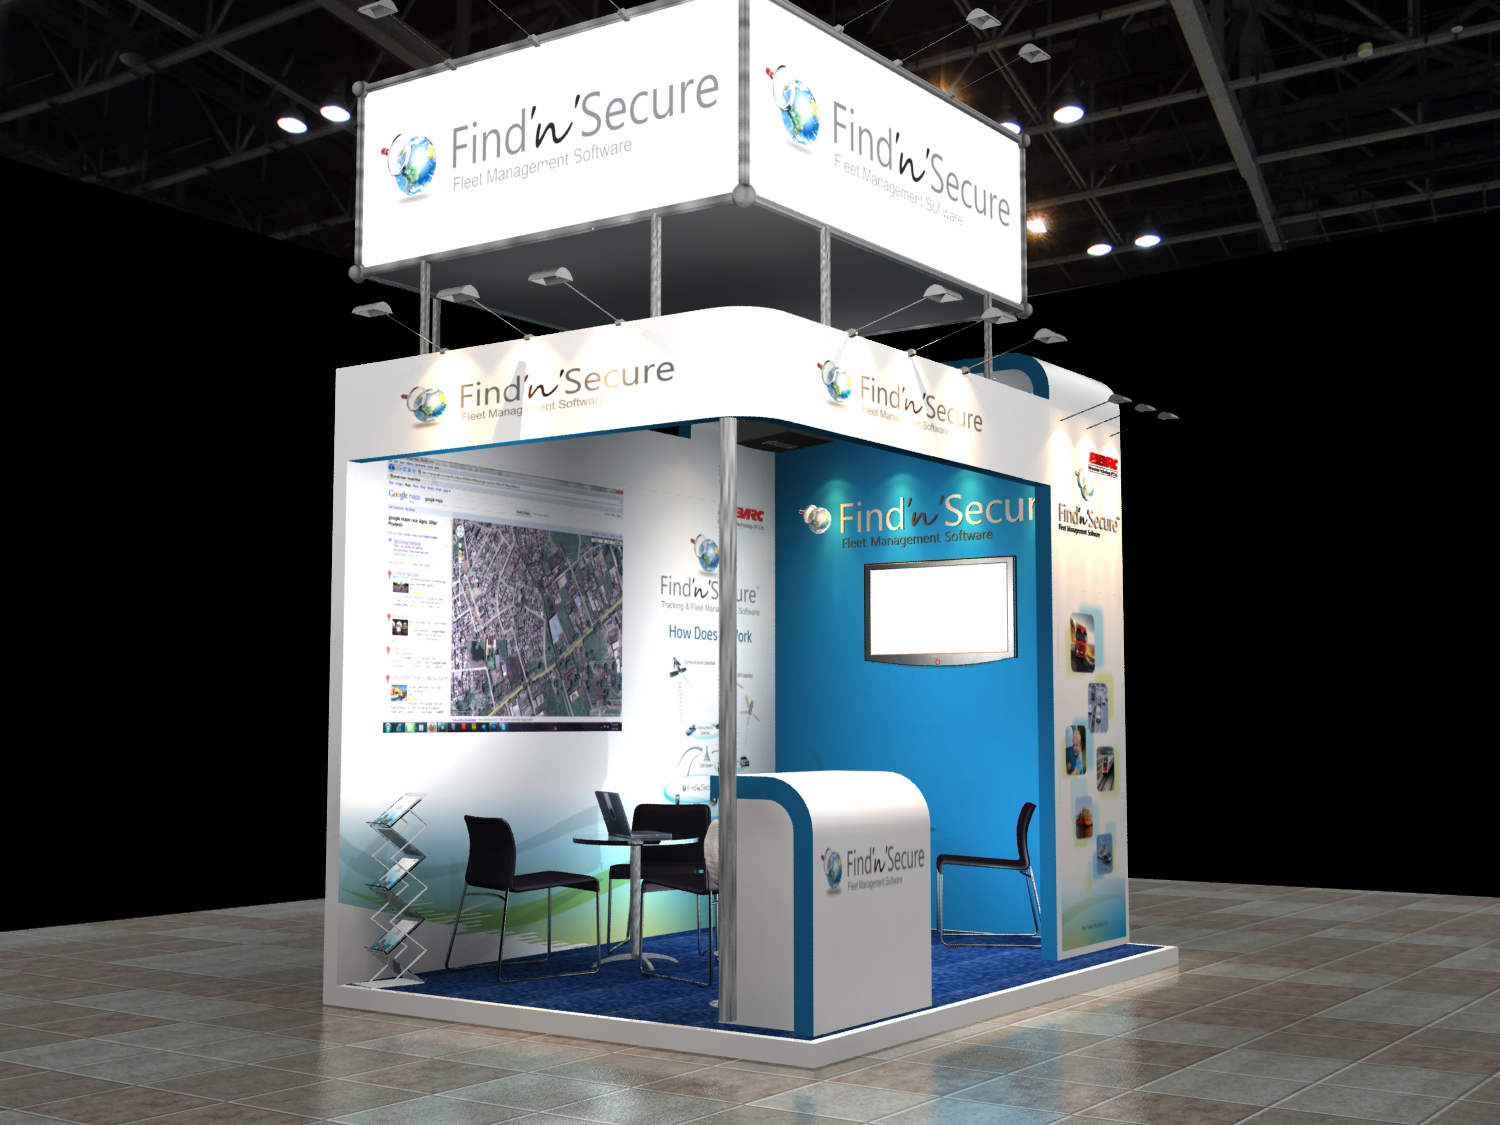 Exhibition Stand Etiquette : D exhibit stand for gitex by manindar on deviantart